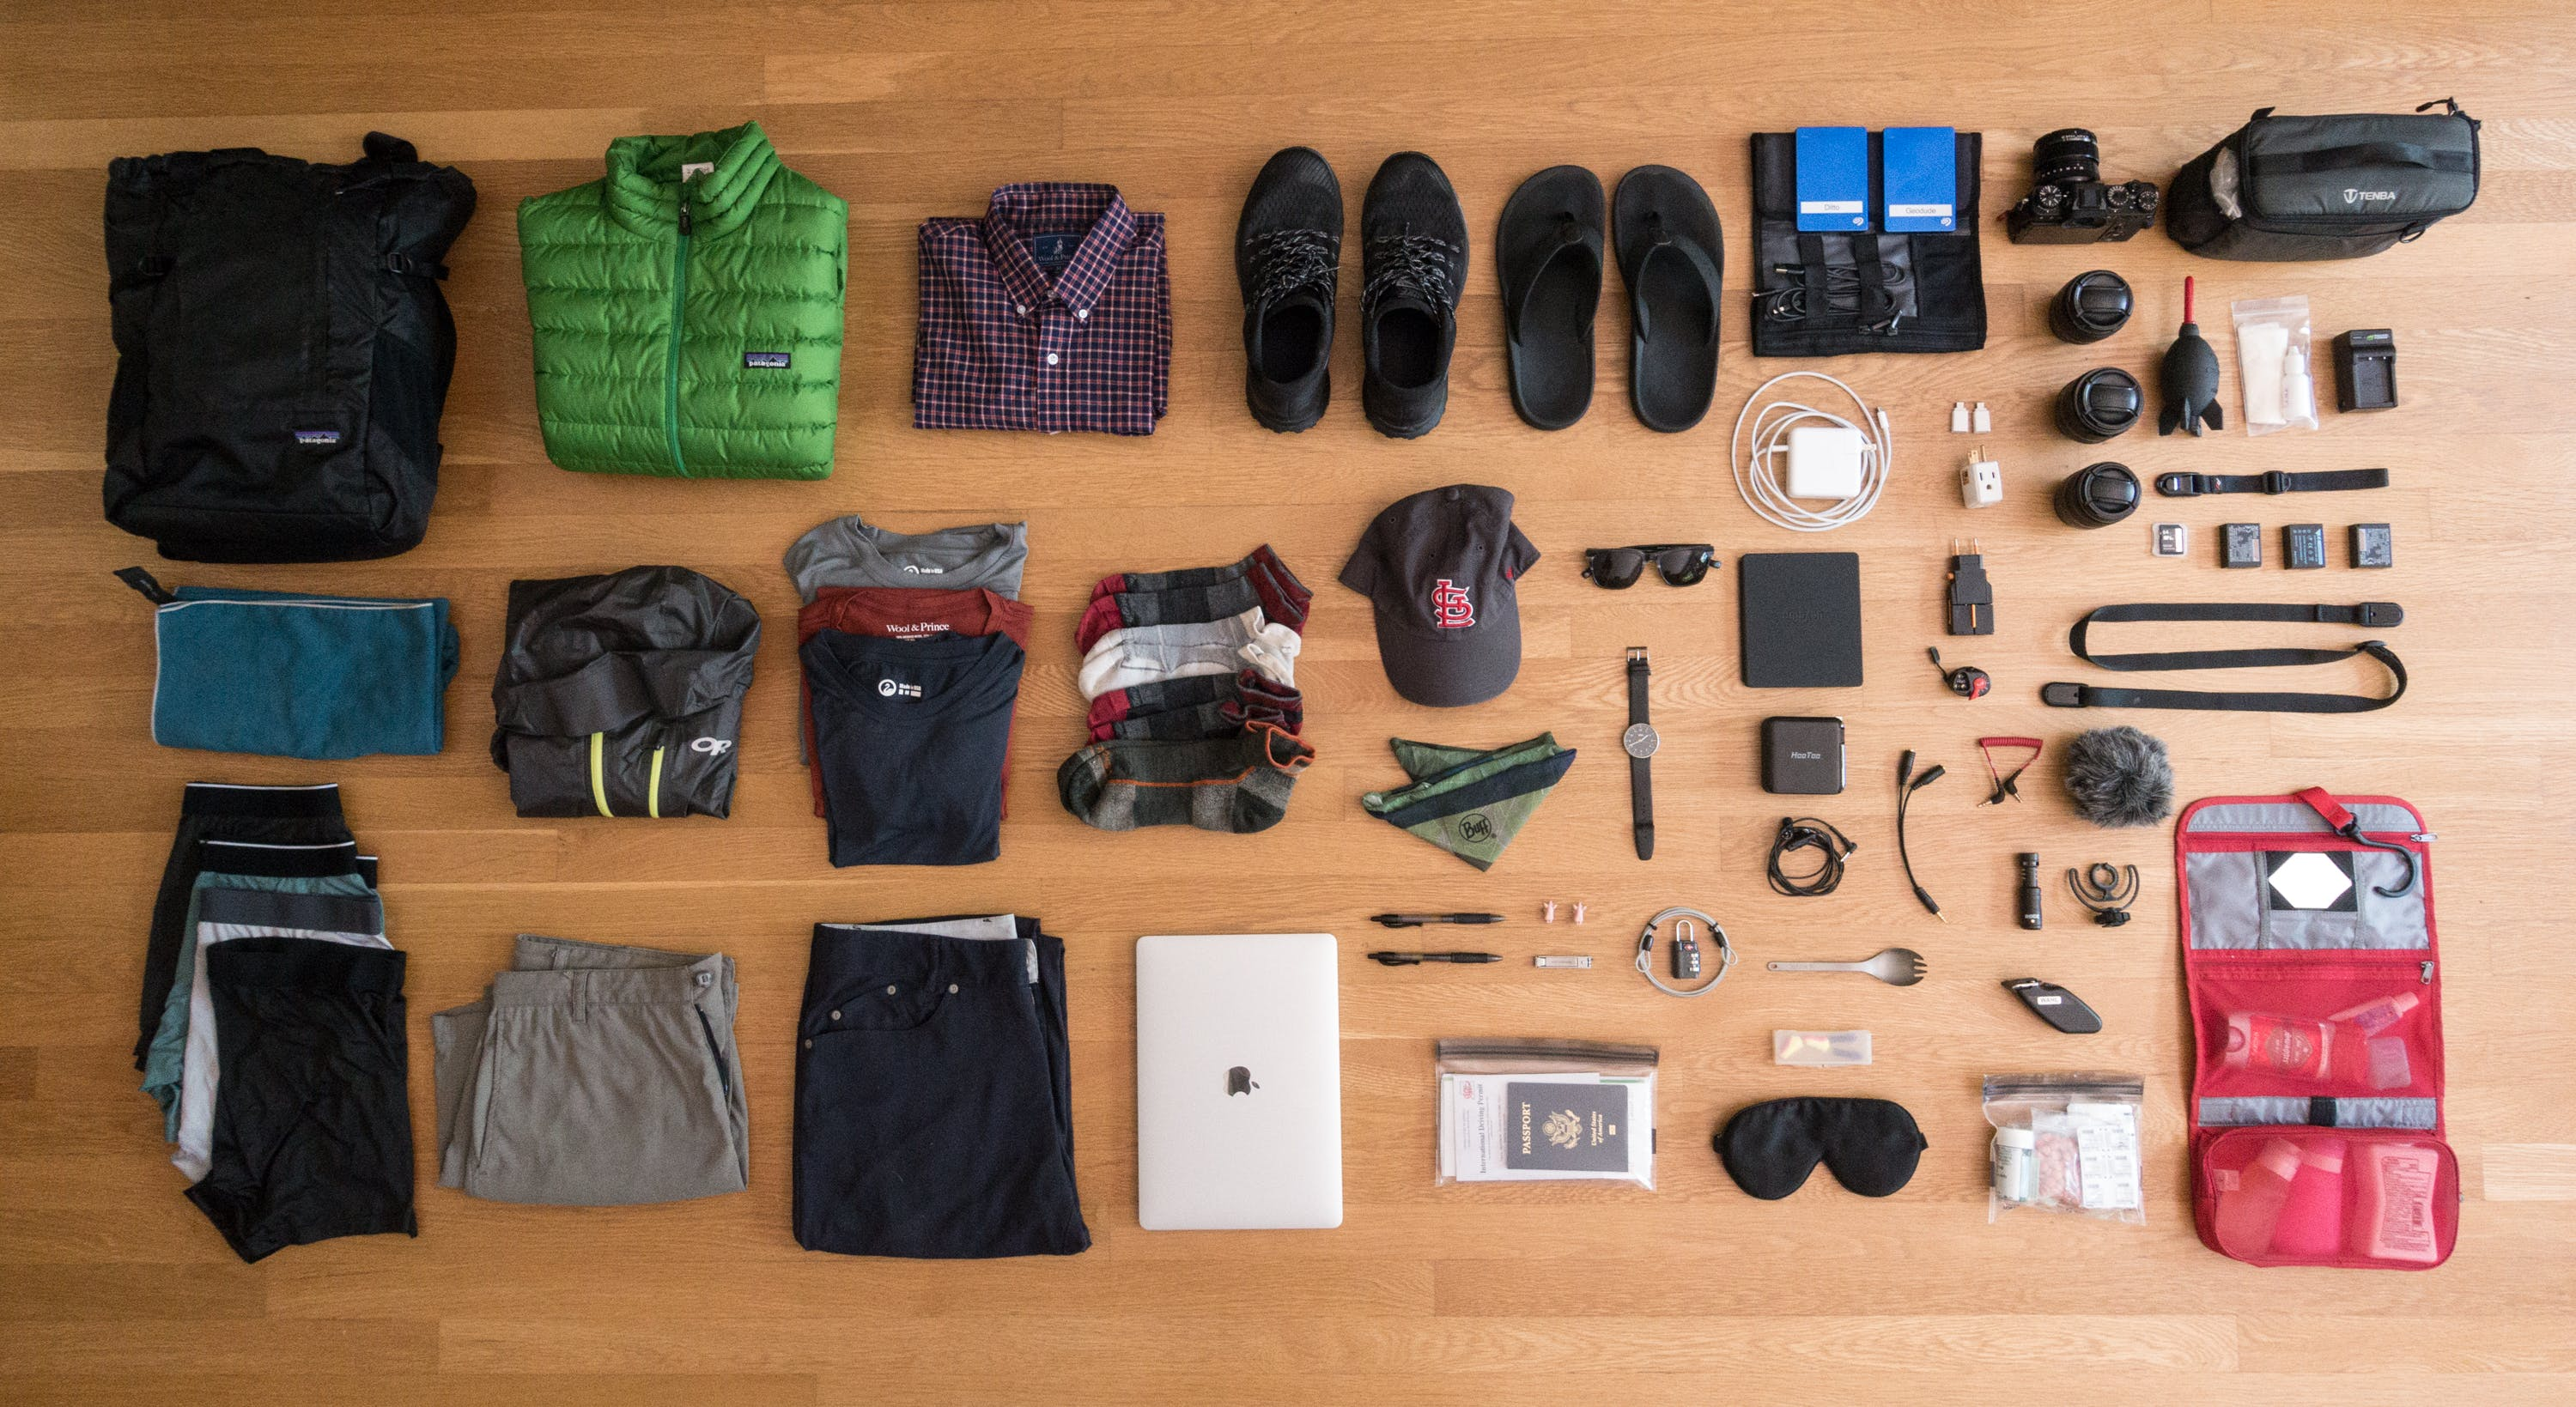 An Inside Look at Sam Sparks Packing List